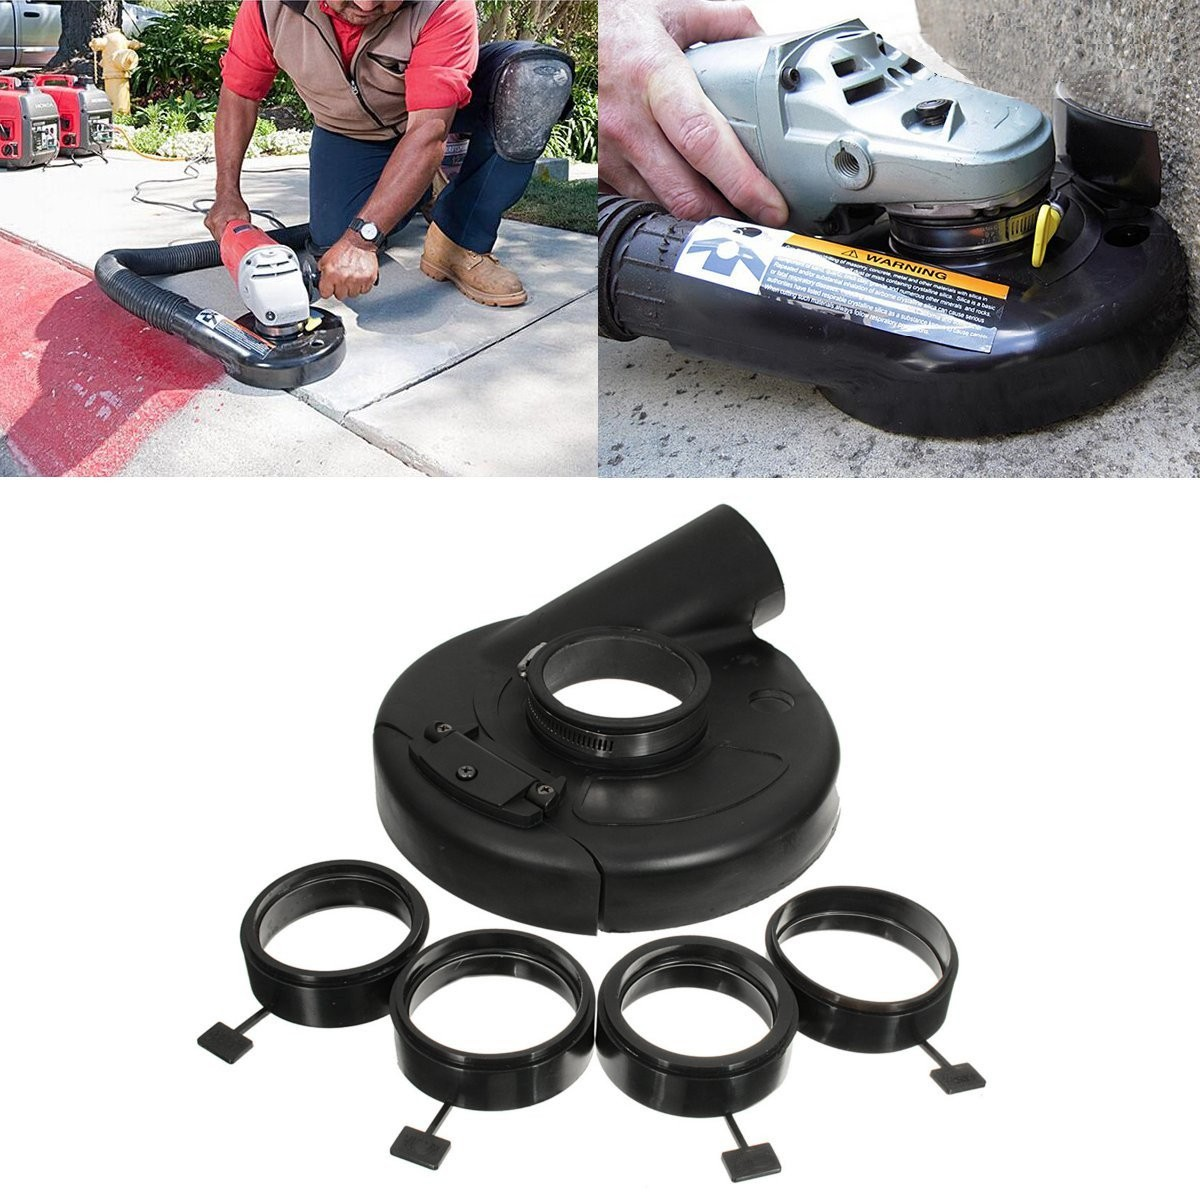 New Arrival 1PC 7 Inch Black Vacuum Dust Shroud Cover for Angle Grinder Hand Grind Convertible Top Quality